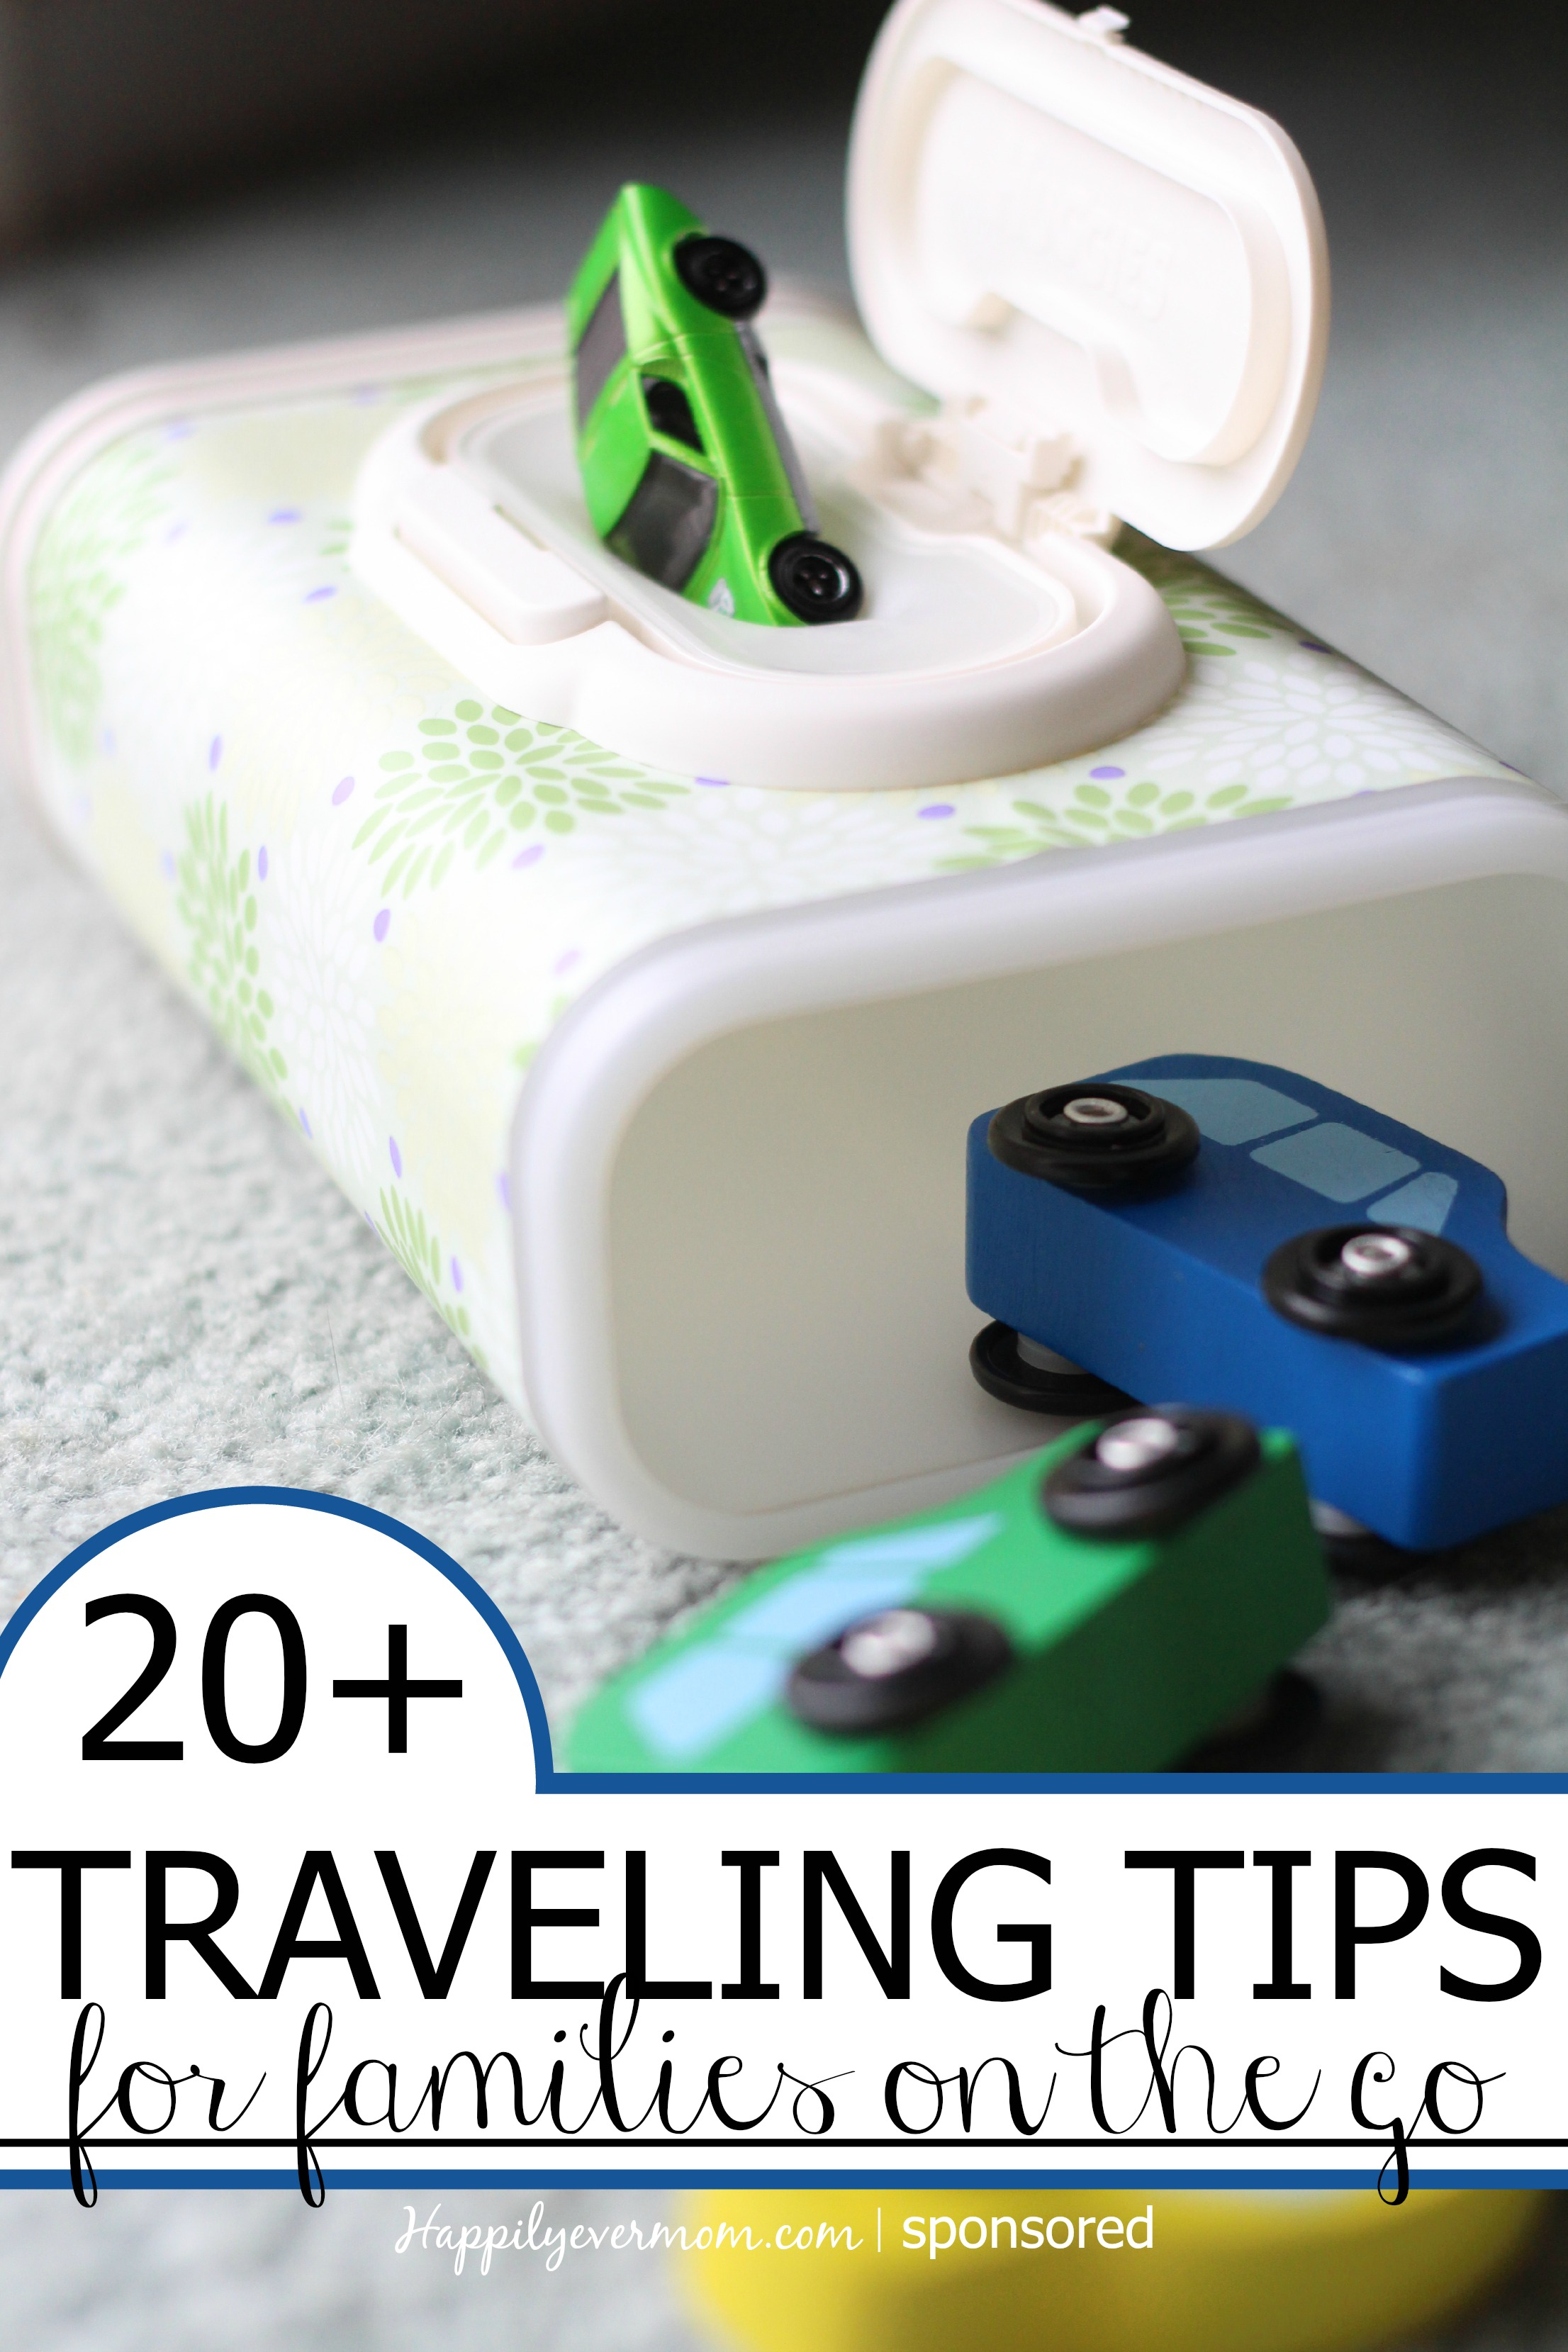 Have fun traveling with kids ~ take these with you!!